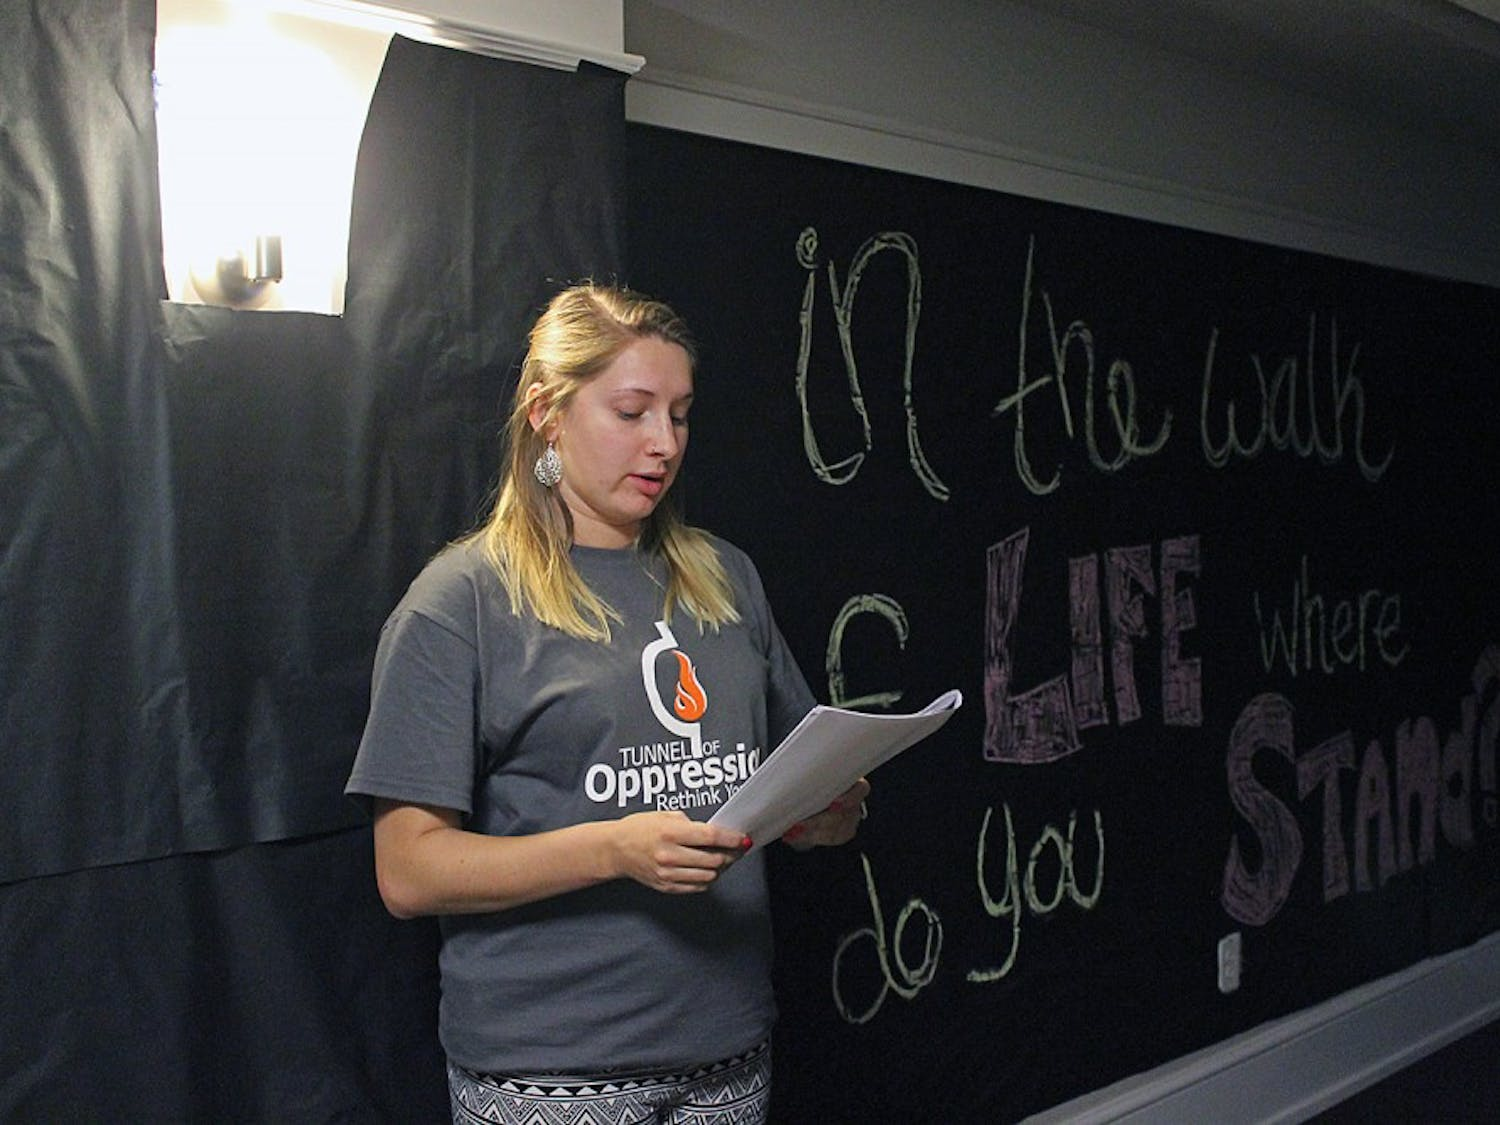 Alix Desch is the Operations Manager of the 2014 Tunnel of Oppression. The Tunnel of Oppression is a tour that engages participants in a number of first hand forms of oppression through interactive acting, viewing monologues and forms of multimedia. The tours began on Monday, March 31 and will continue until Wednesday, April 2 in Cobb Residence Hall.